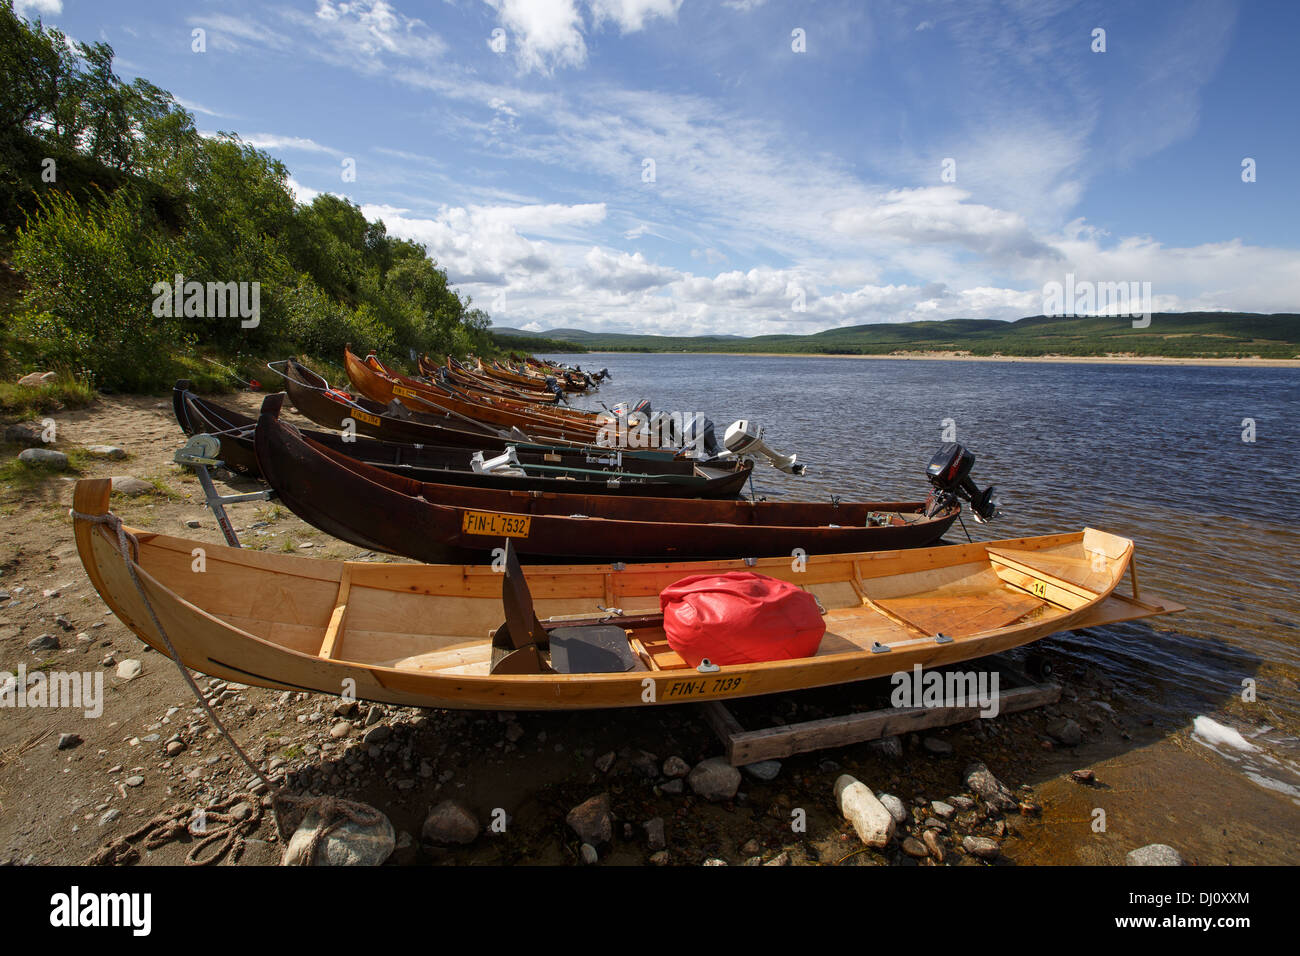 Wooden boats with outboard motors for salmon fishing on river Teno, the natural border between Norway and Finland in Lapland. - Stock Image